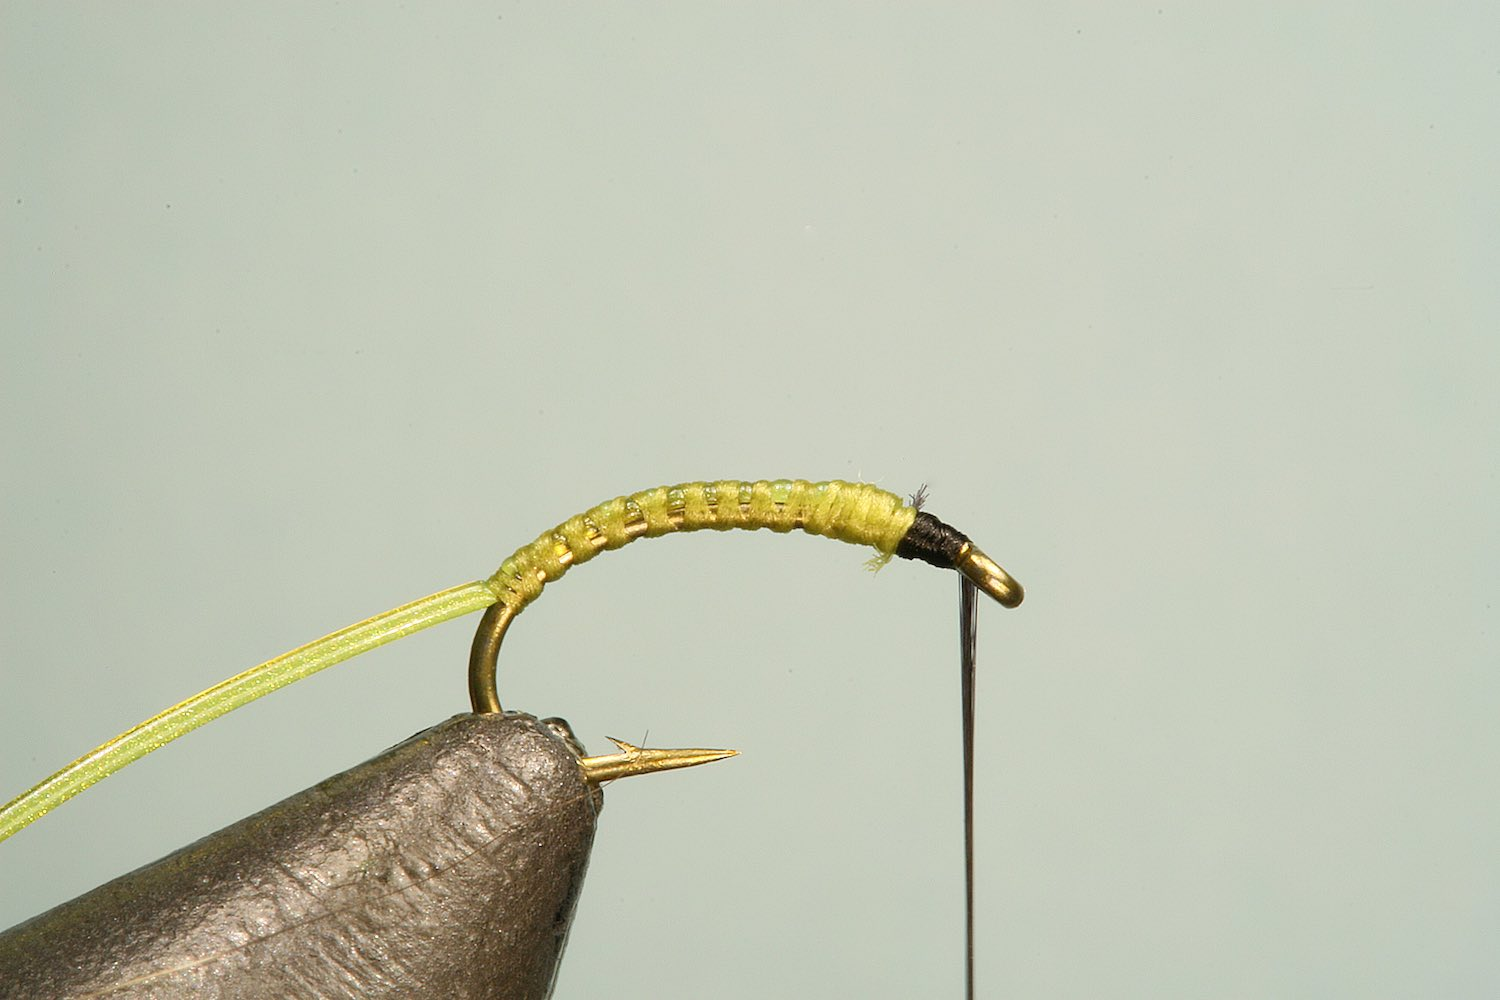 Step 2 of tying sequence for jelly bloodworm fly pattern